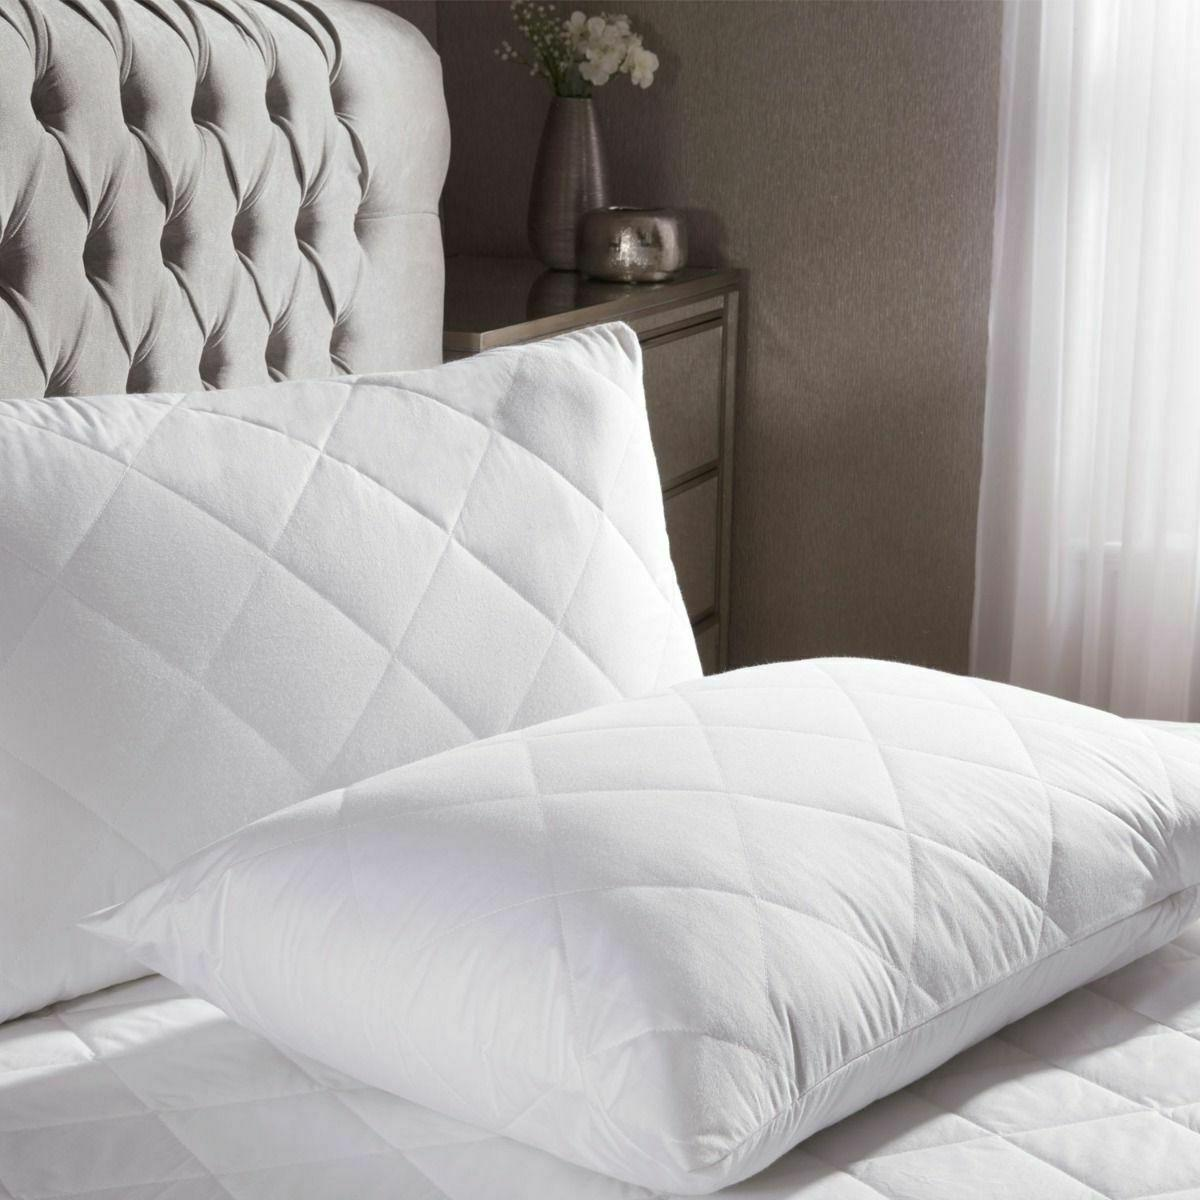 """Queen Size Protector Pad Topper Cover 16"""" Deep Sheet"""